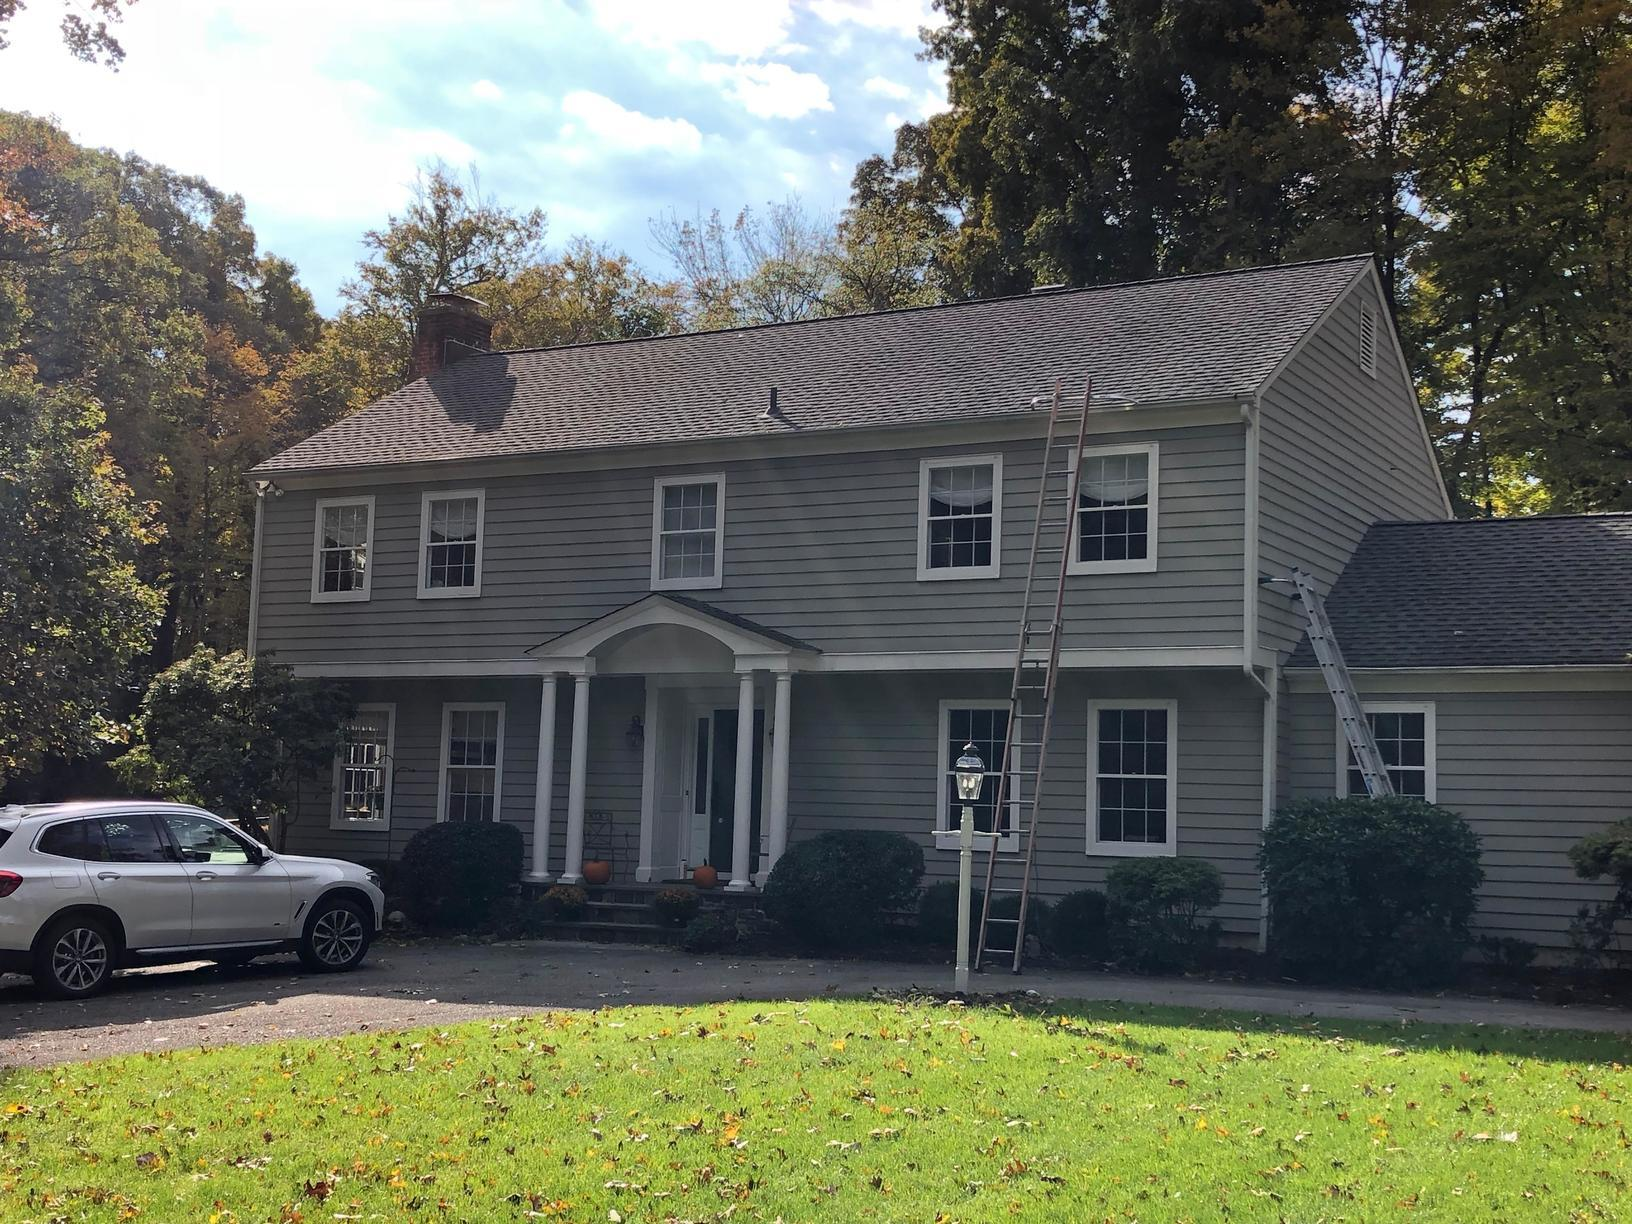 Gutter System - New Canaan, CT - Before Photo